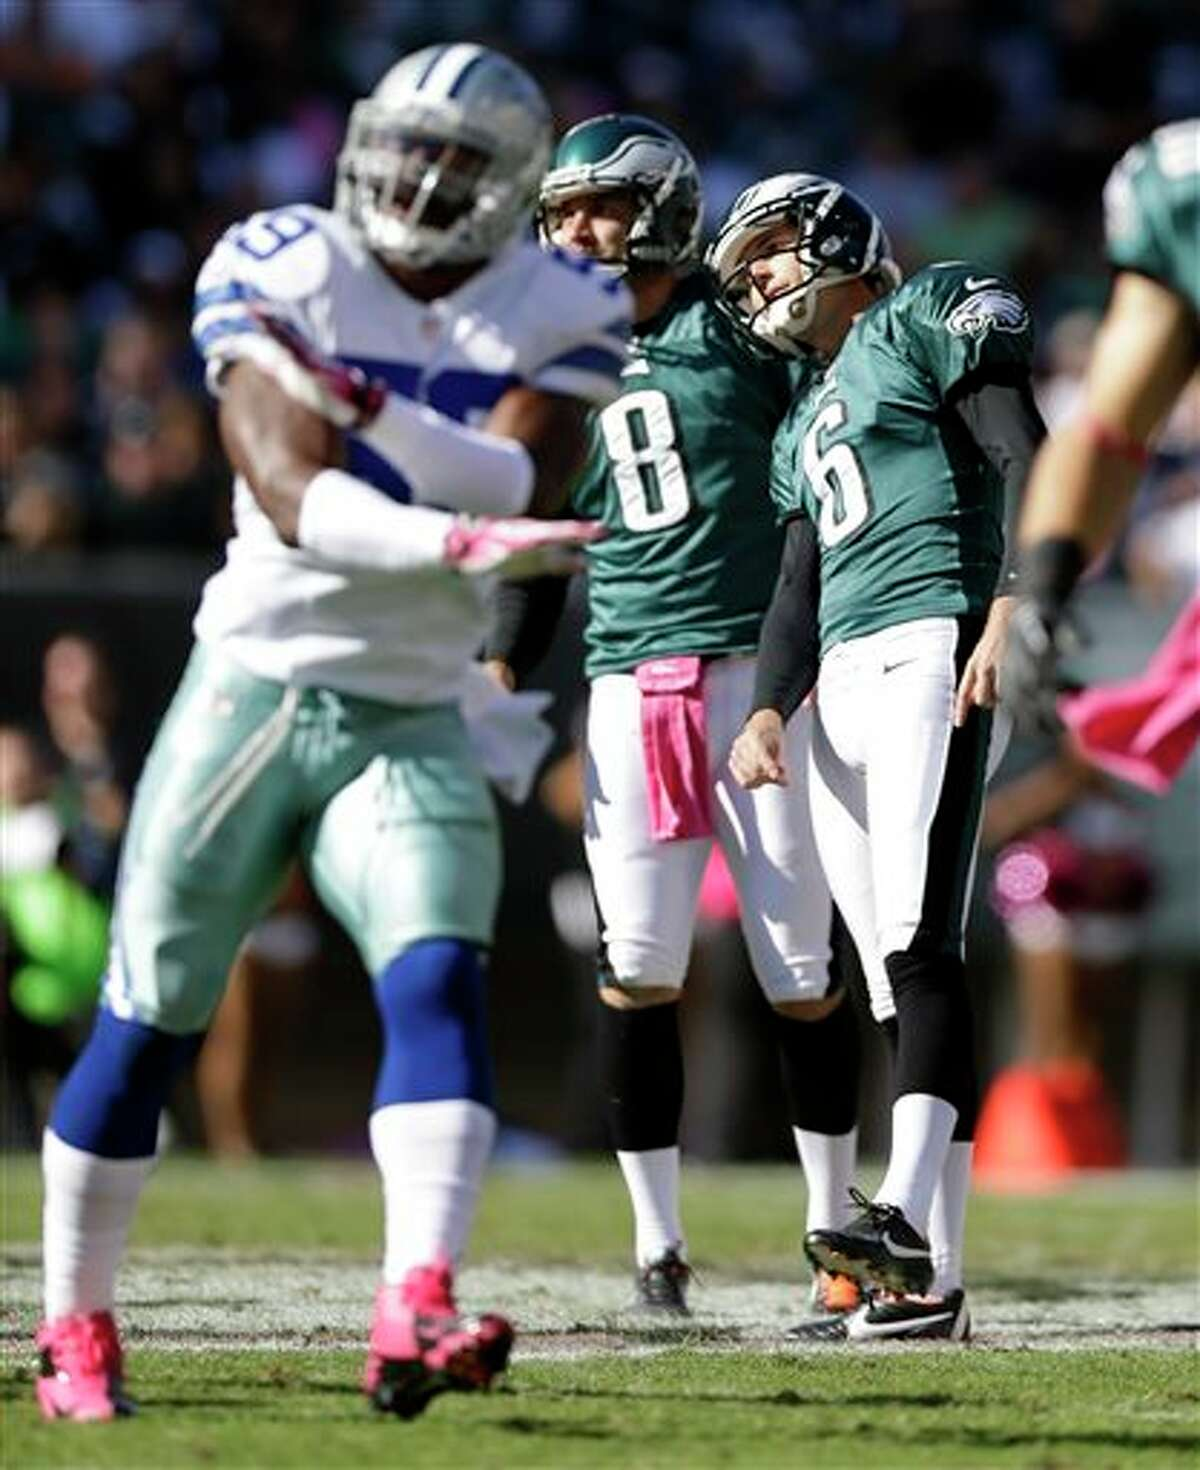 Philadelphia Eagles kicker Alex Henery (6) and placeholder Donnie Jones (8) watch Henery's missed field goal attempt as Dallas Cowboys' Ernie Sims, left, gestures against it during the first half of an NFL football game, Sunday, Oct. 20, 2013, in Philadelphia.